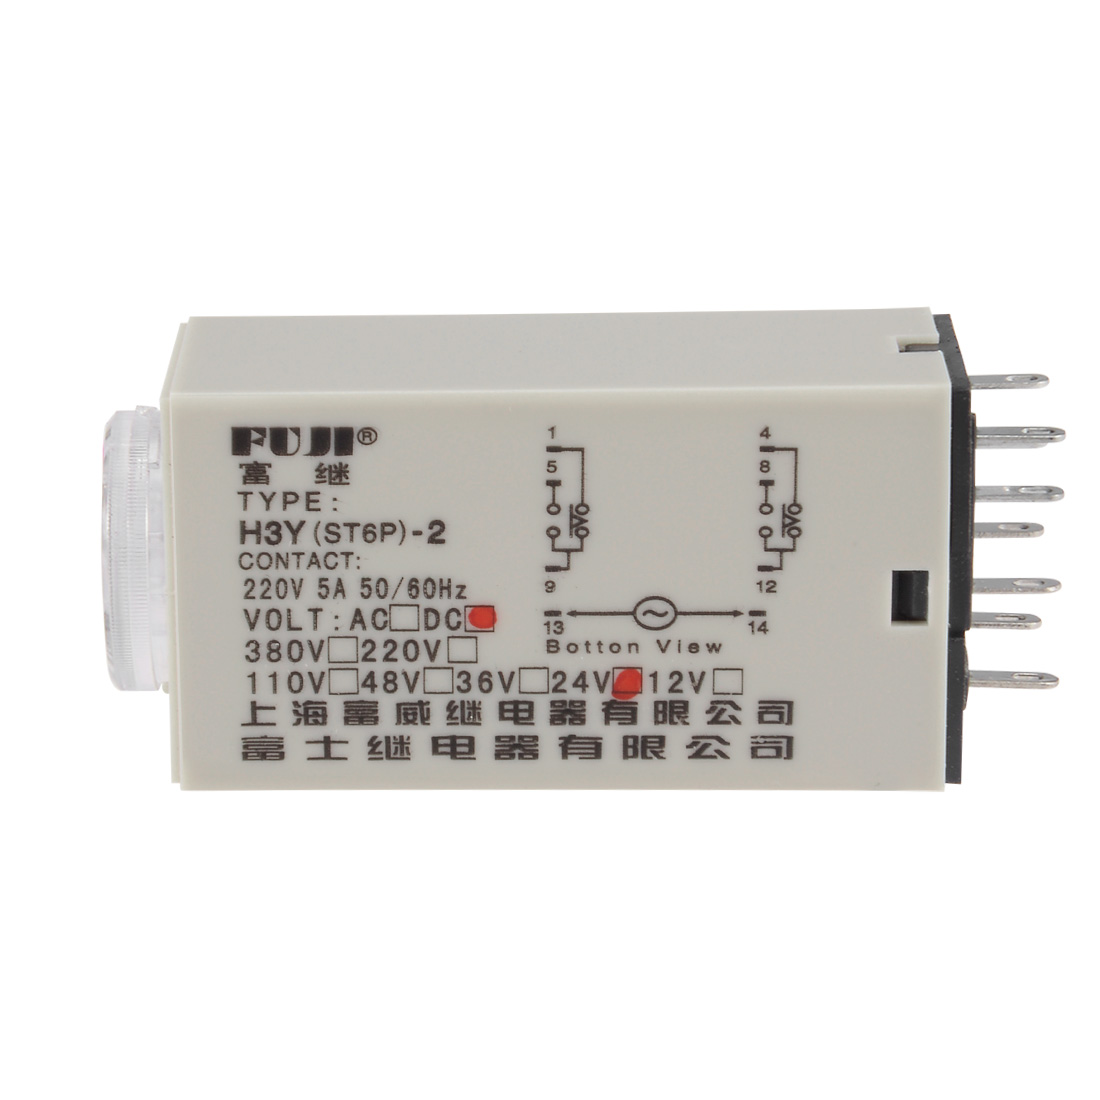 24vdc 30s 8 Terminals Range Adjustable Delay Timer Time Relay H3y On Circuit H3yst6p 2